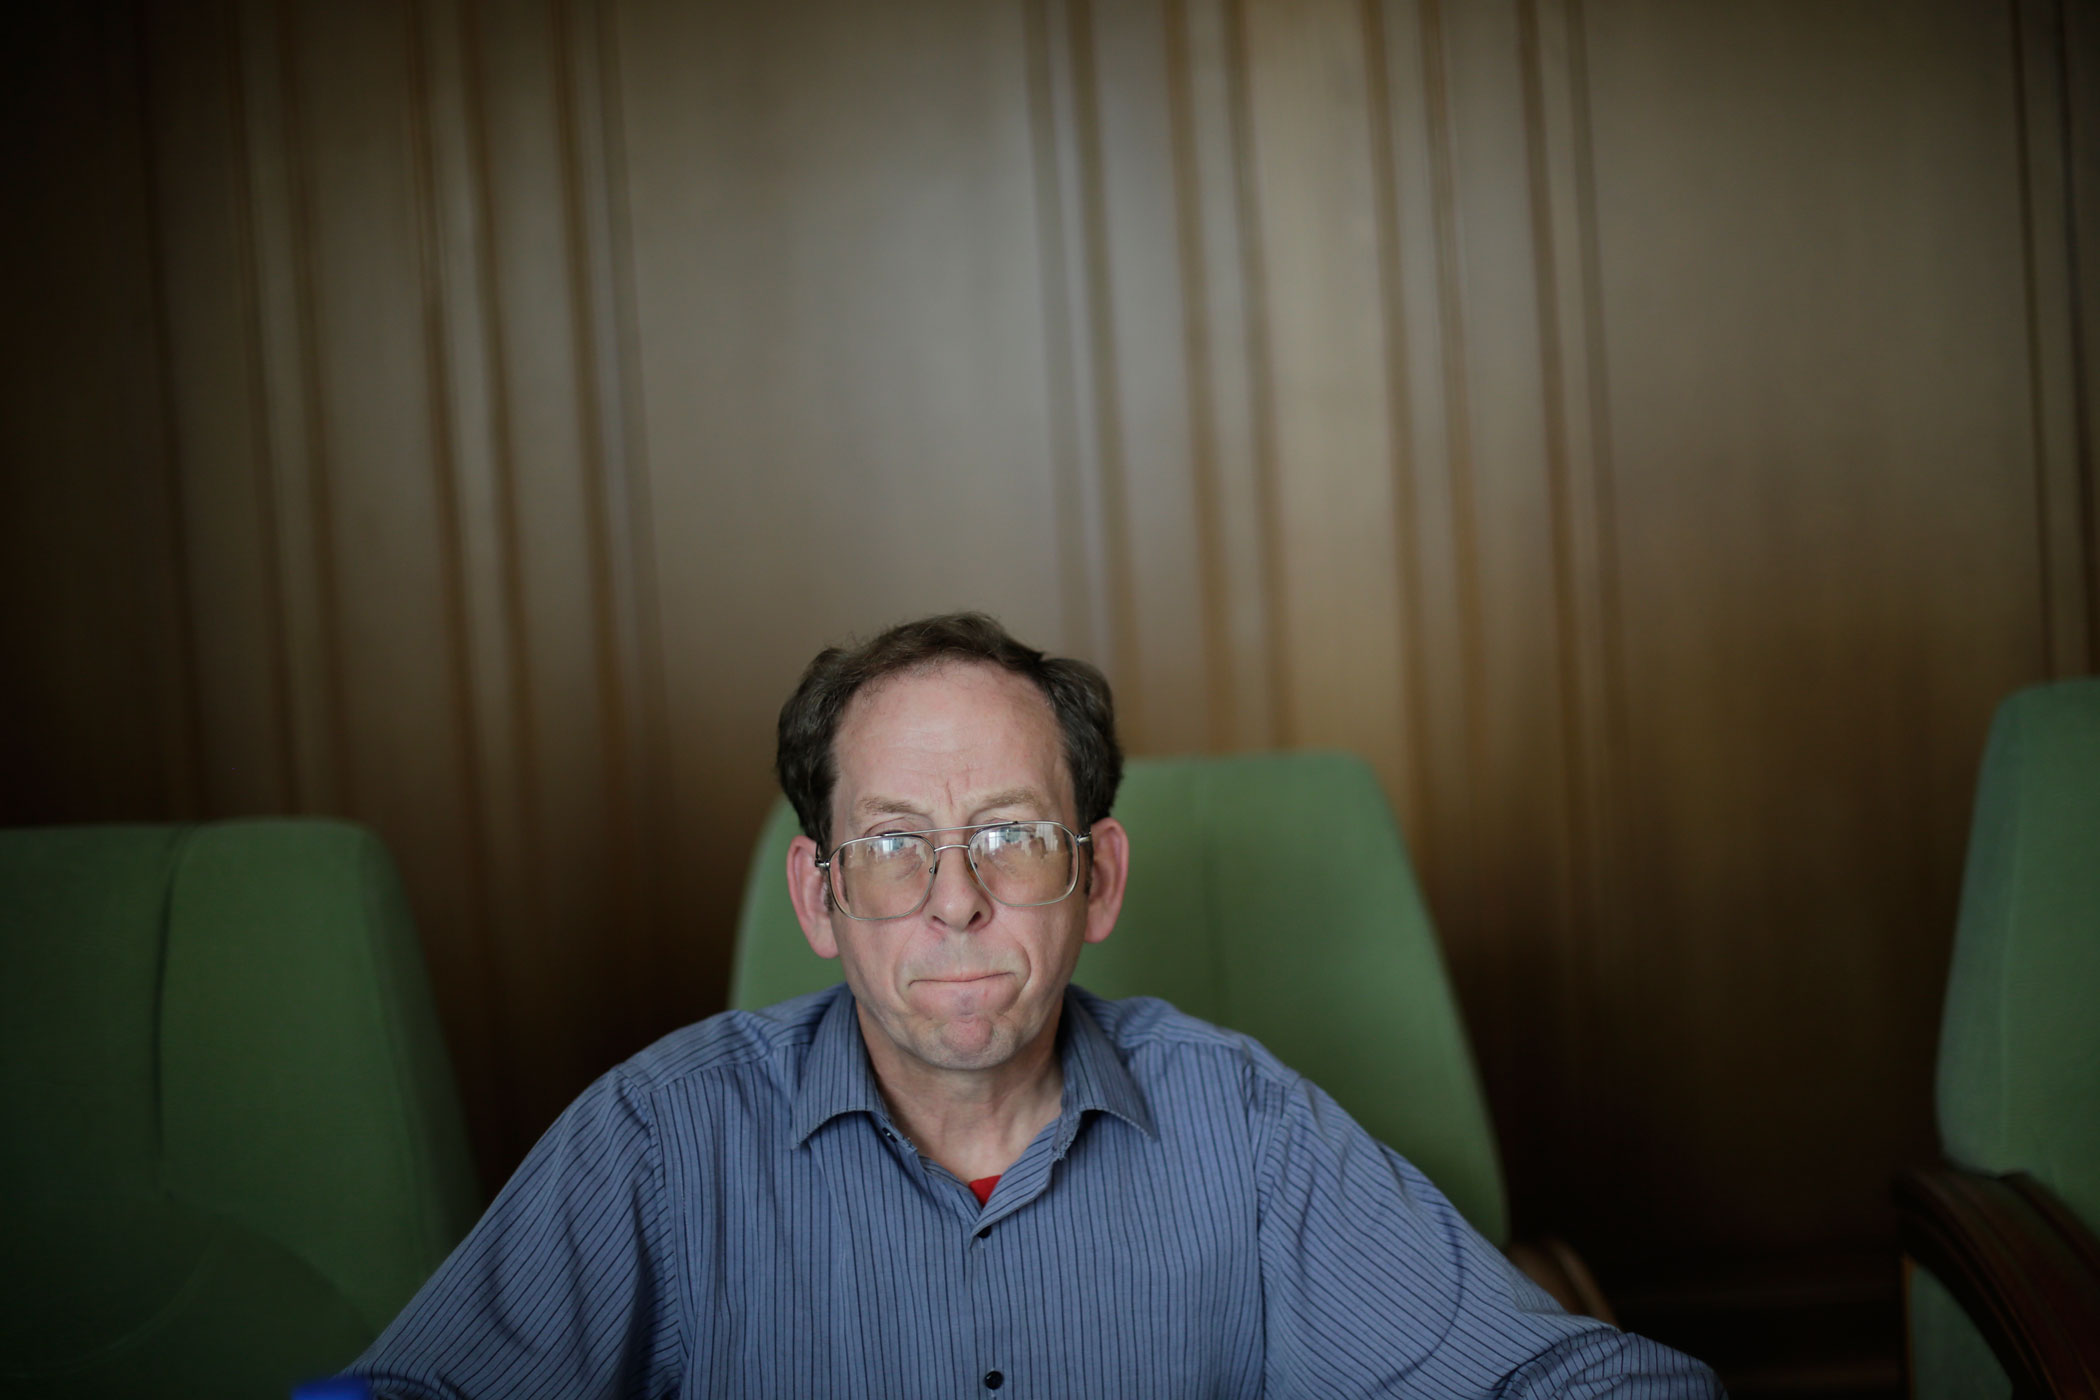 Jeffrey Fowle, an American detained in North Korea speaks to the Associated Press, Sept. 1, 2014 in Pyongyang, North Korea.